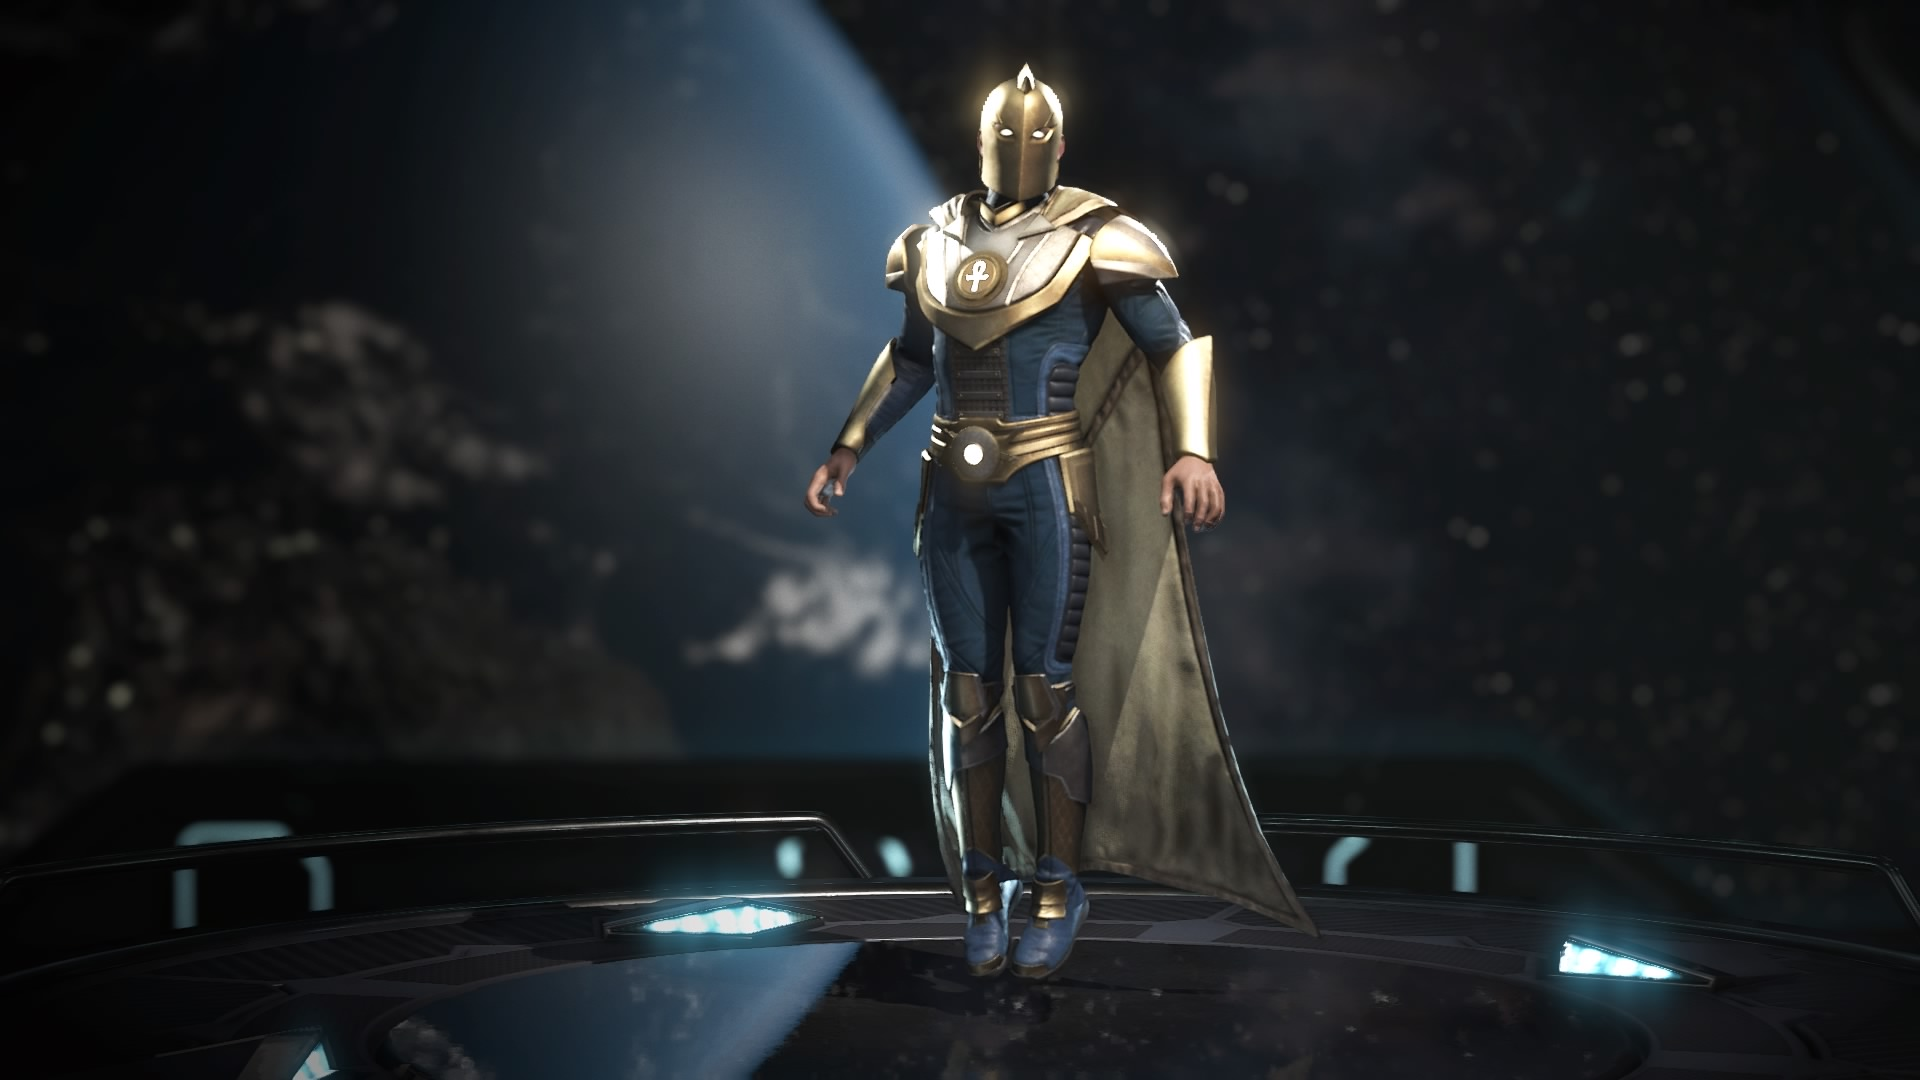 Doctor Fate (Knight of Justice)